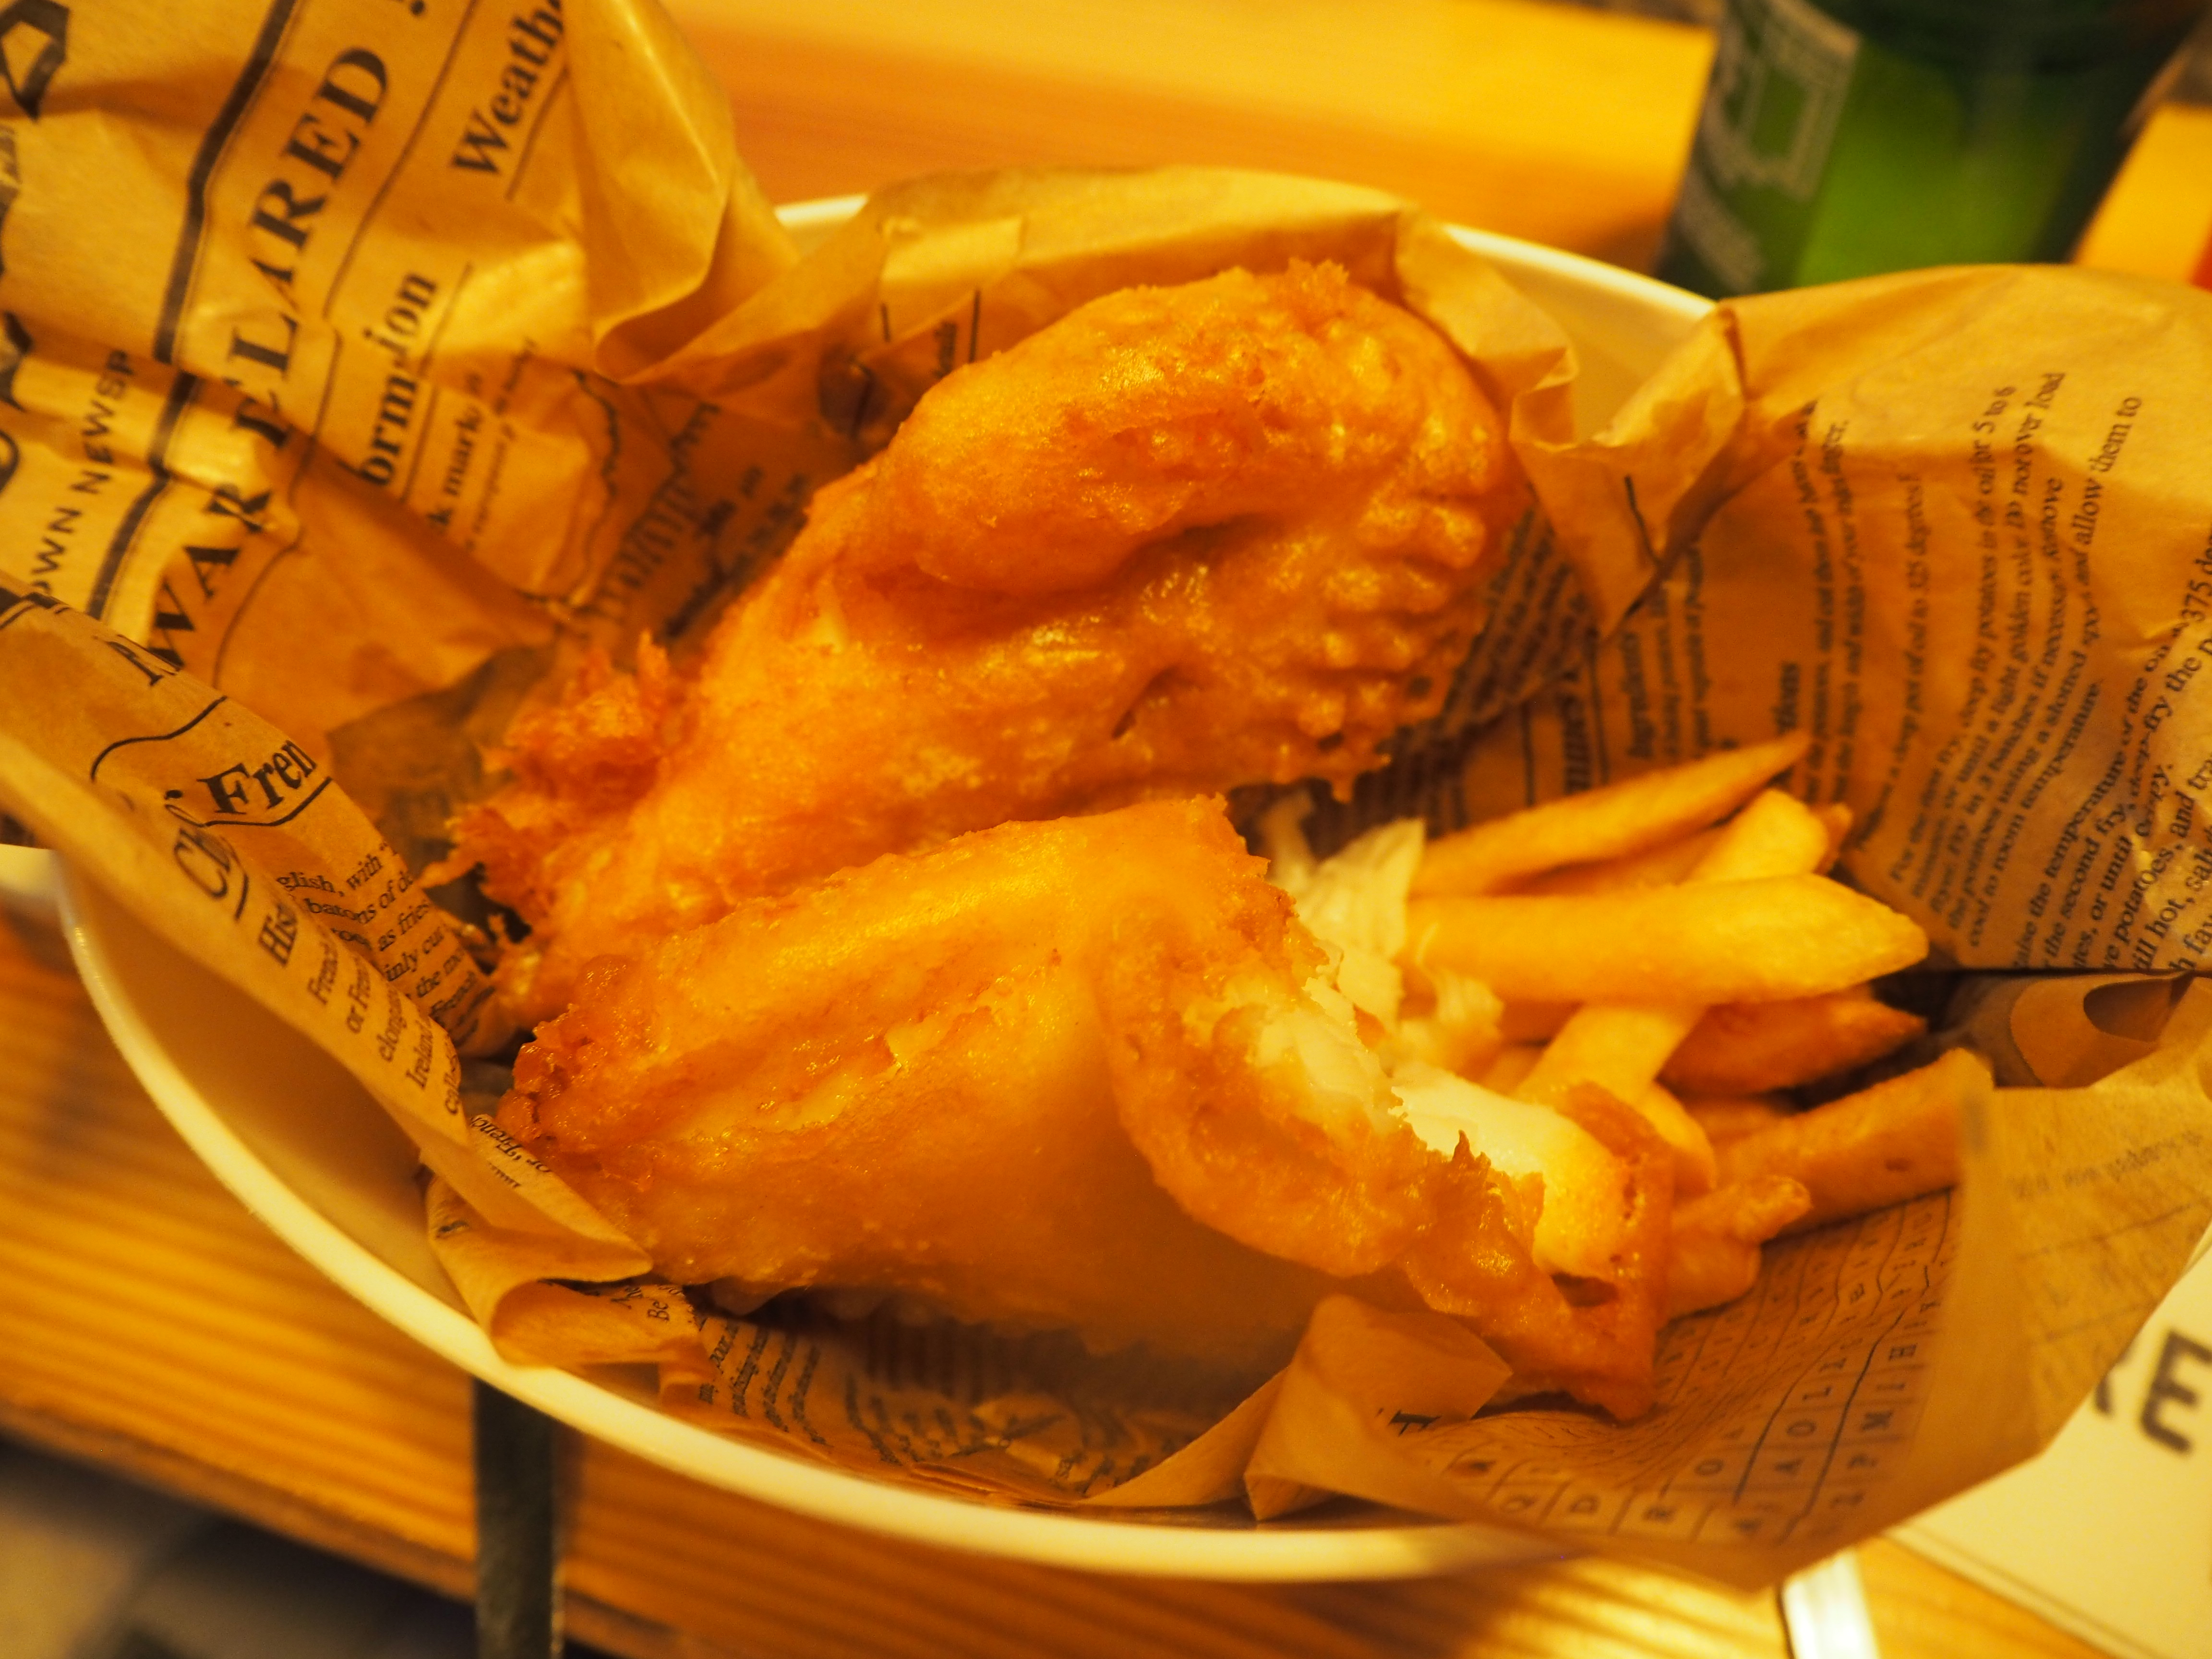 the most expensive fish + chips I've ever eaten!